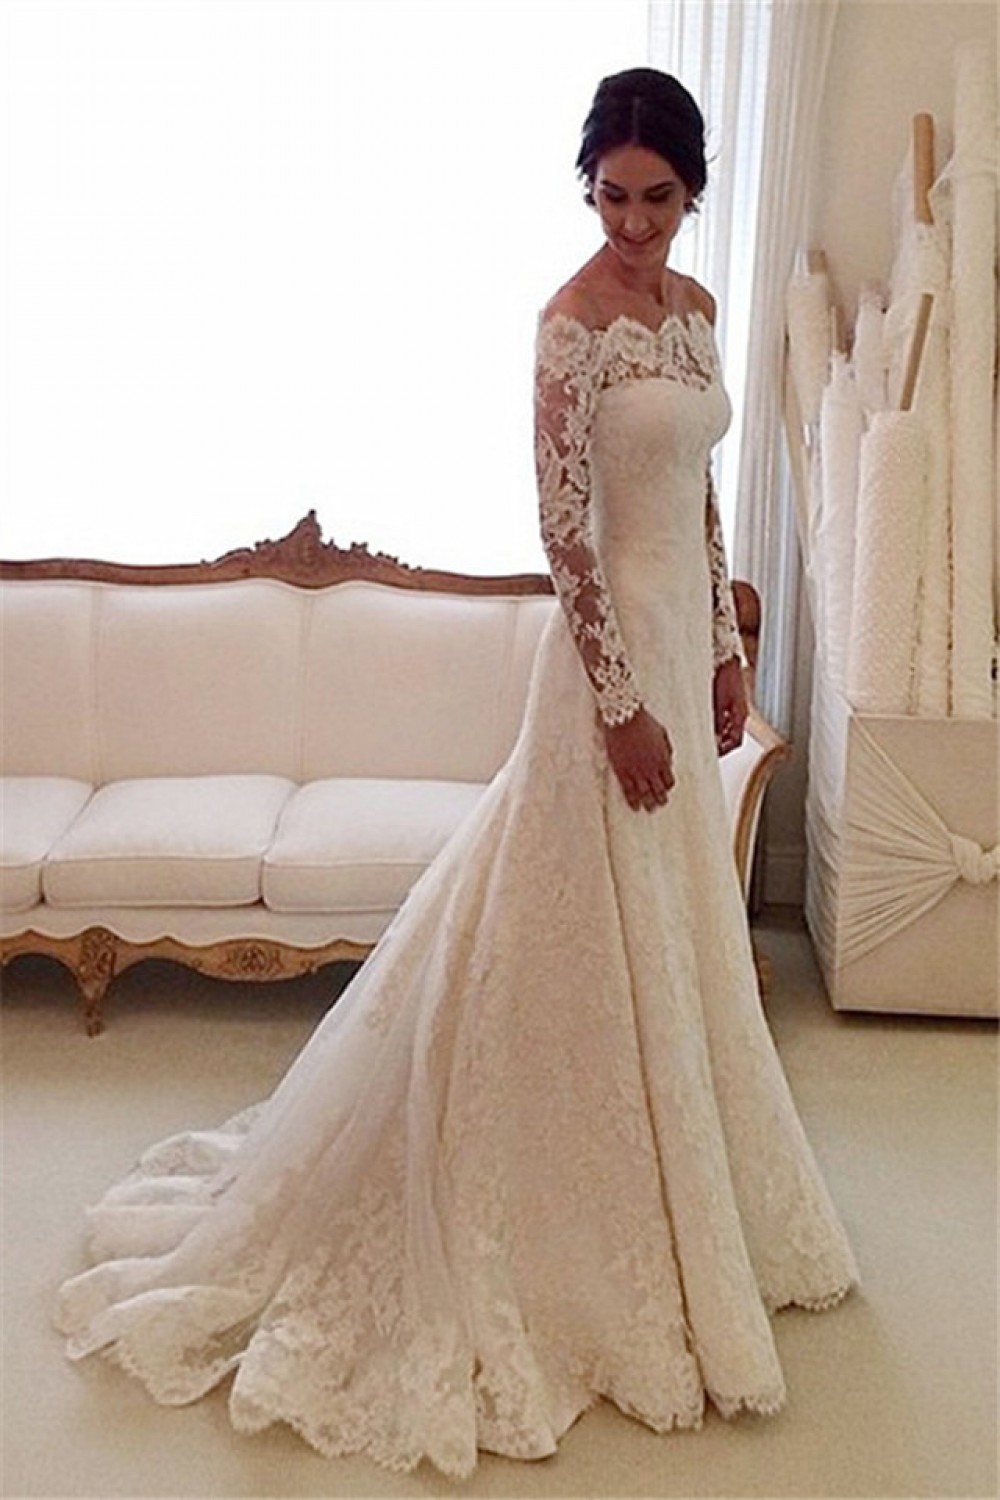 Trumpet/Mermaid Scalloped-Edge Long Sleeve Lace Wedding Dress